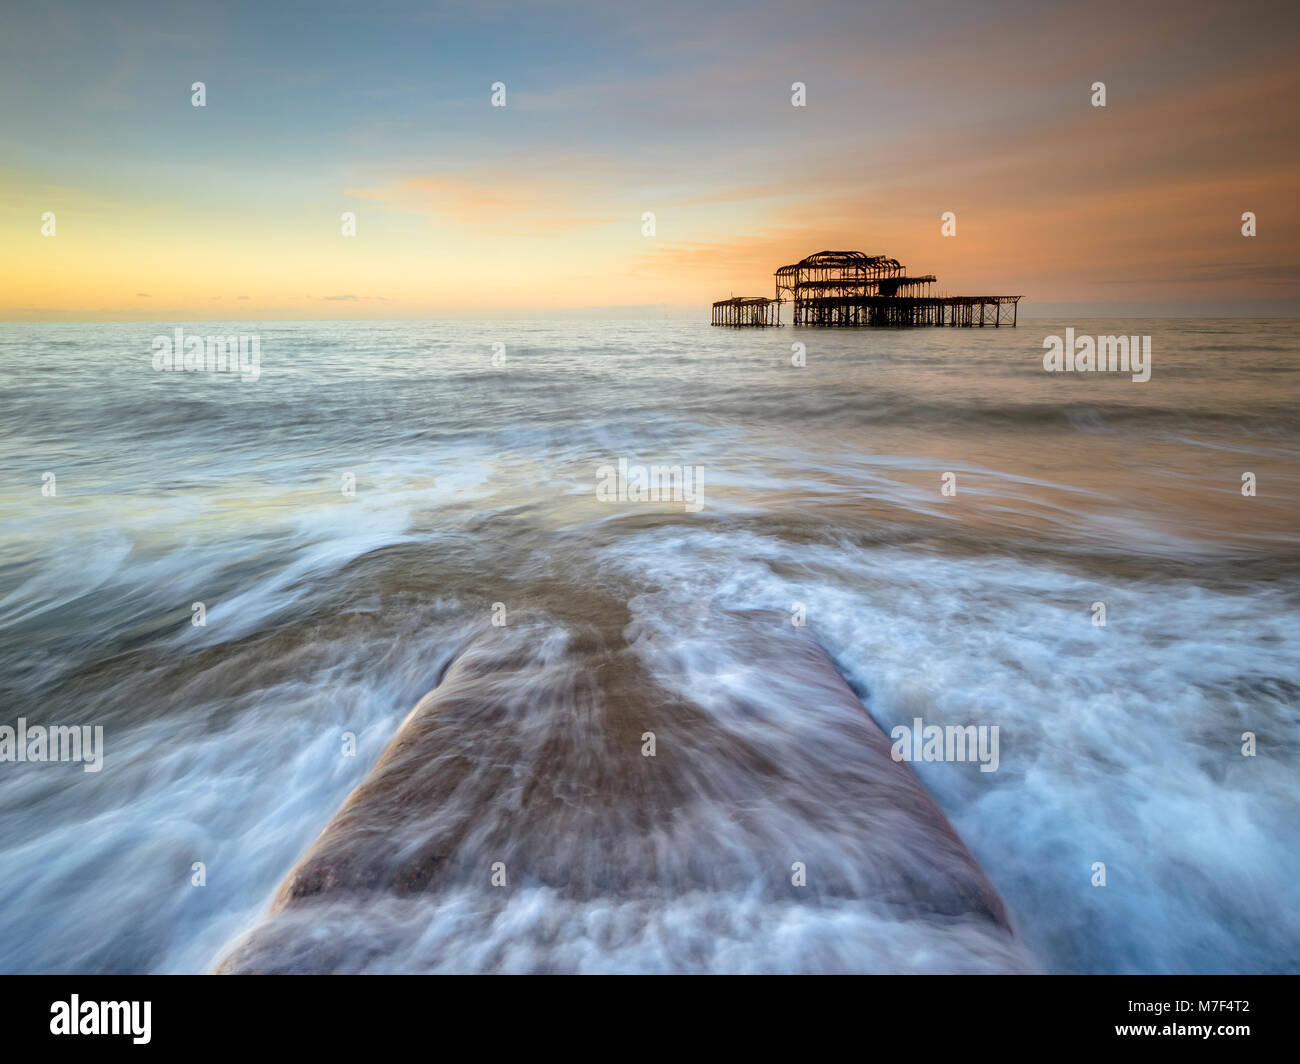 Water rushing over a stone jetty at the old Pier, Brighton. Stock Photo